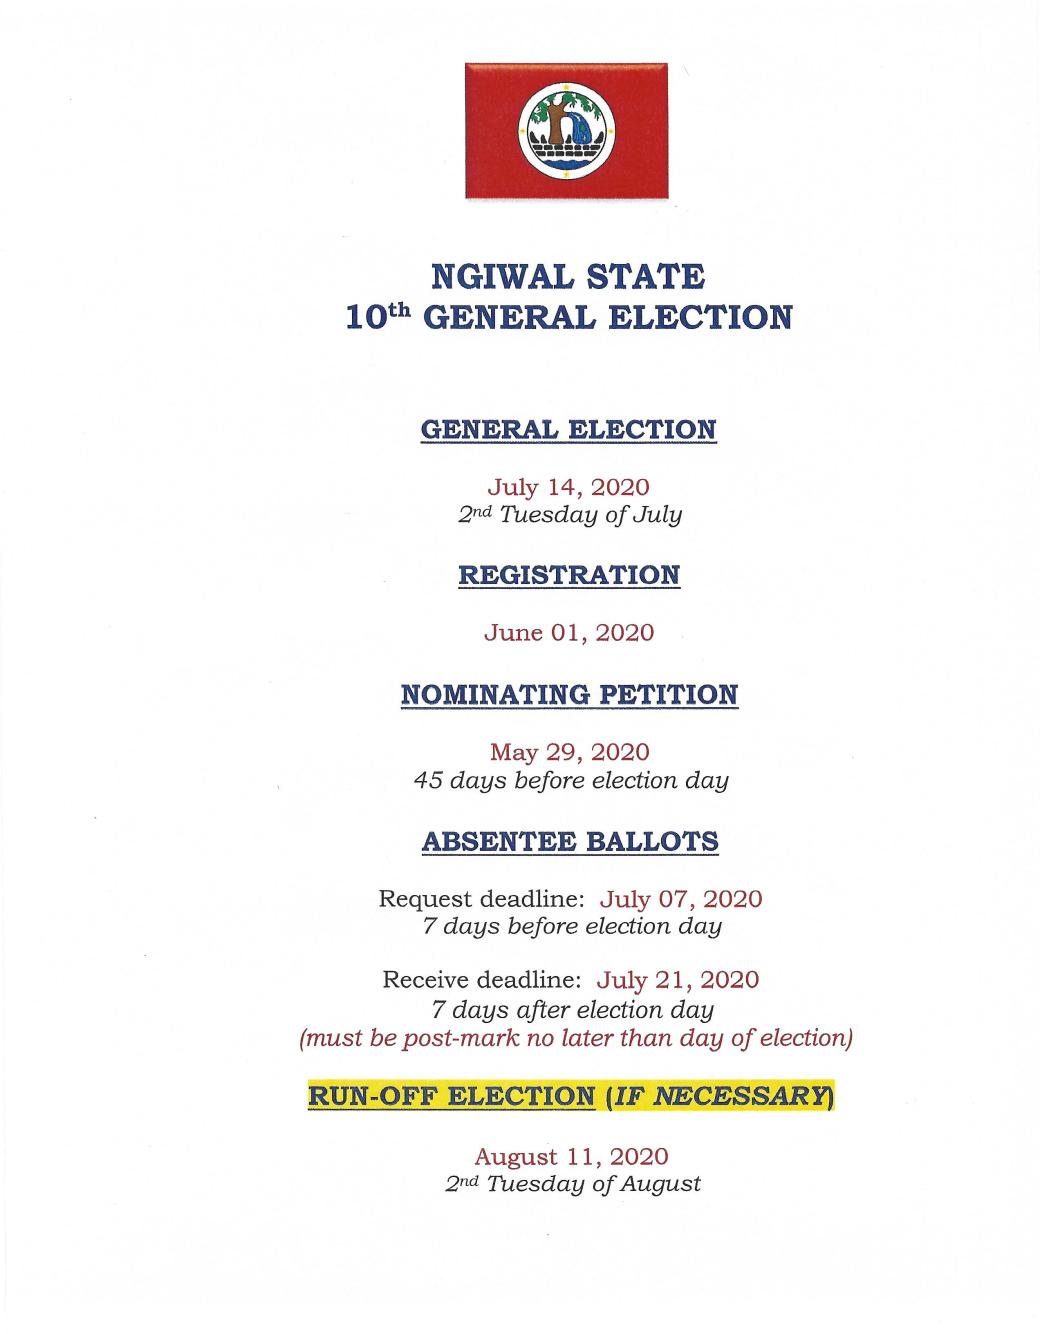 Ngiwal State 10th General Election Dates